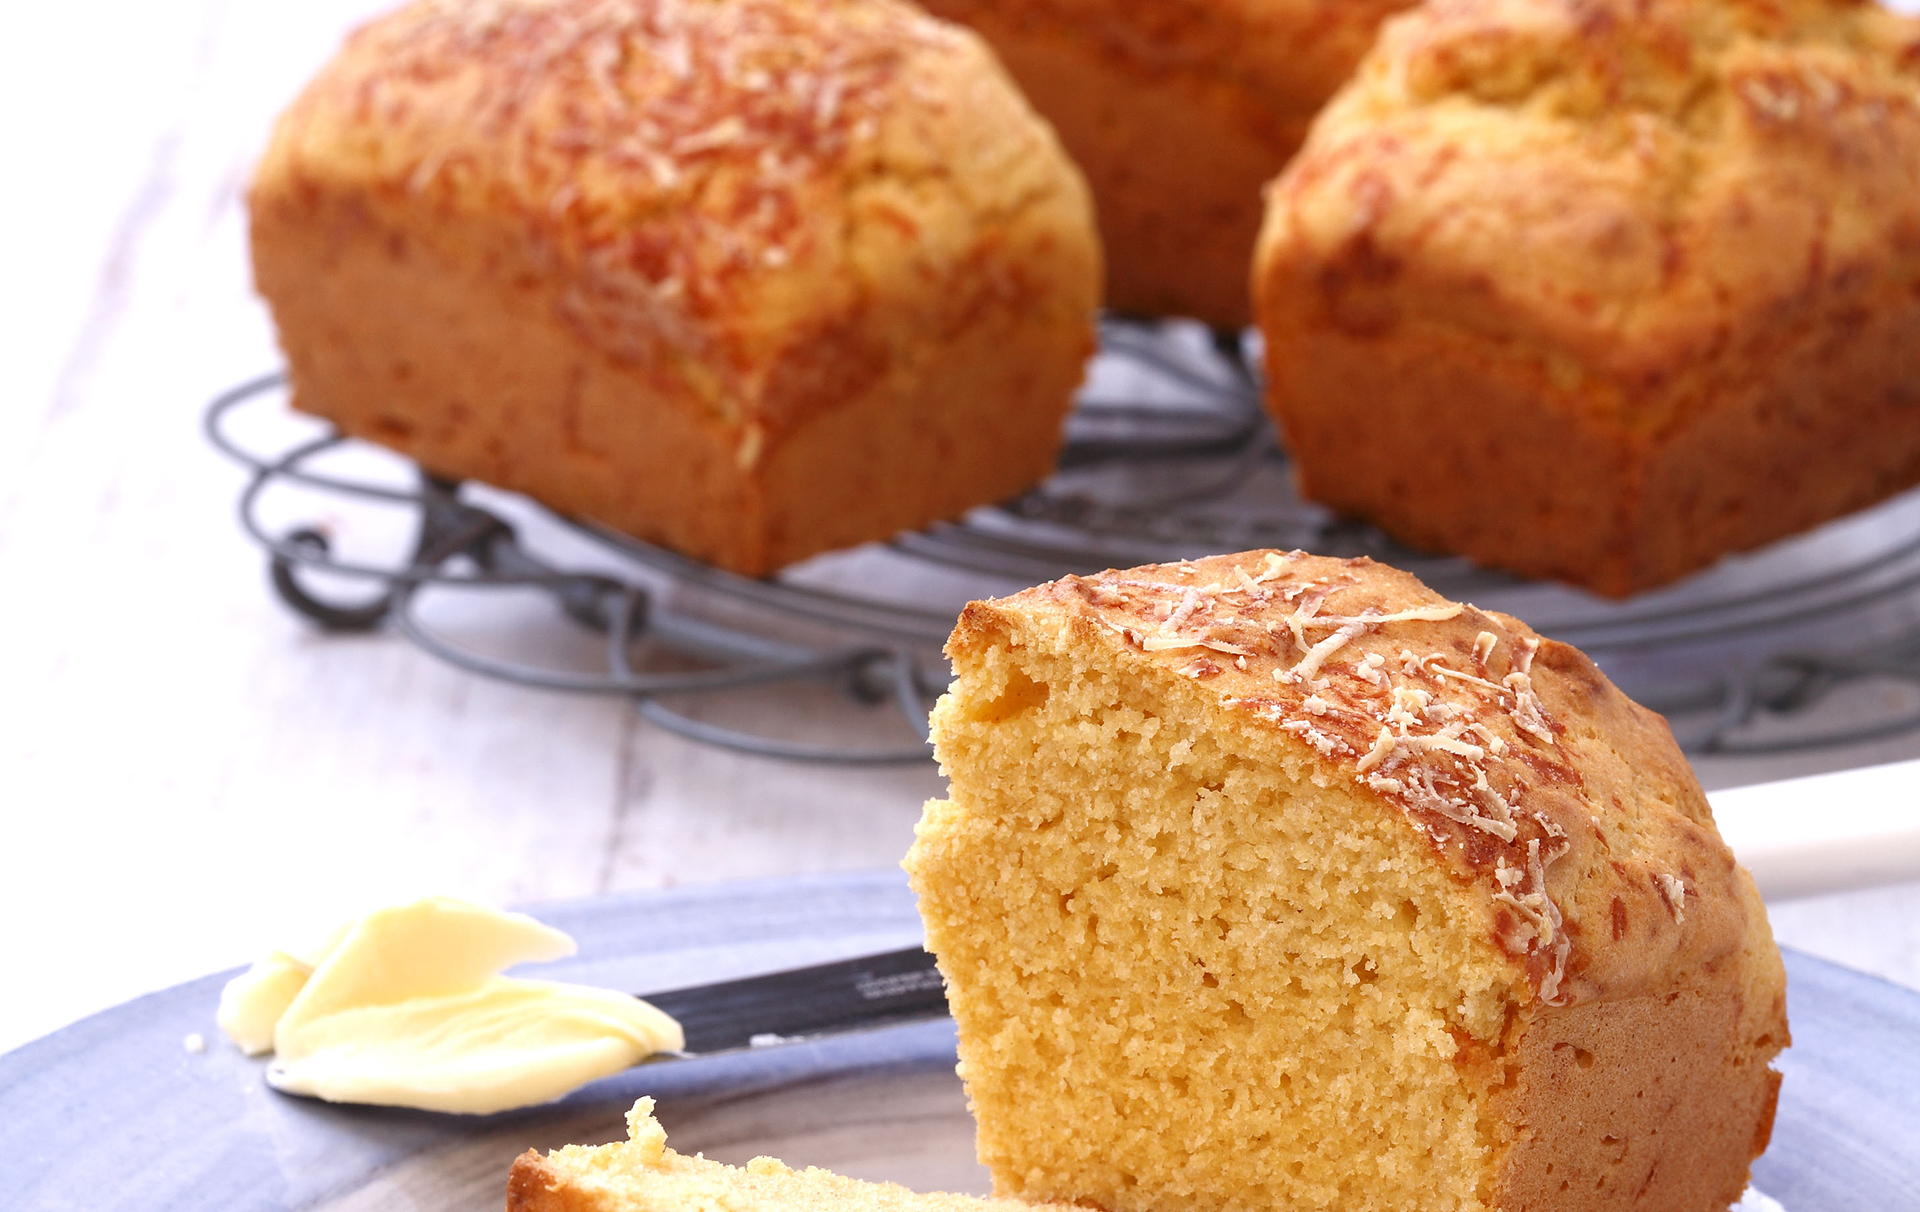 Mini corn bread loaves are the perfect bake to give to family and friends at the start of a meal